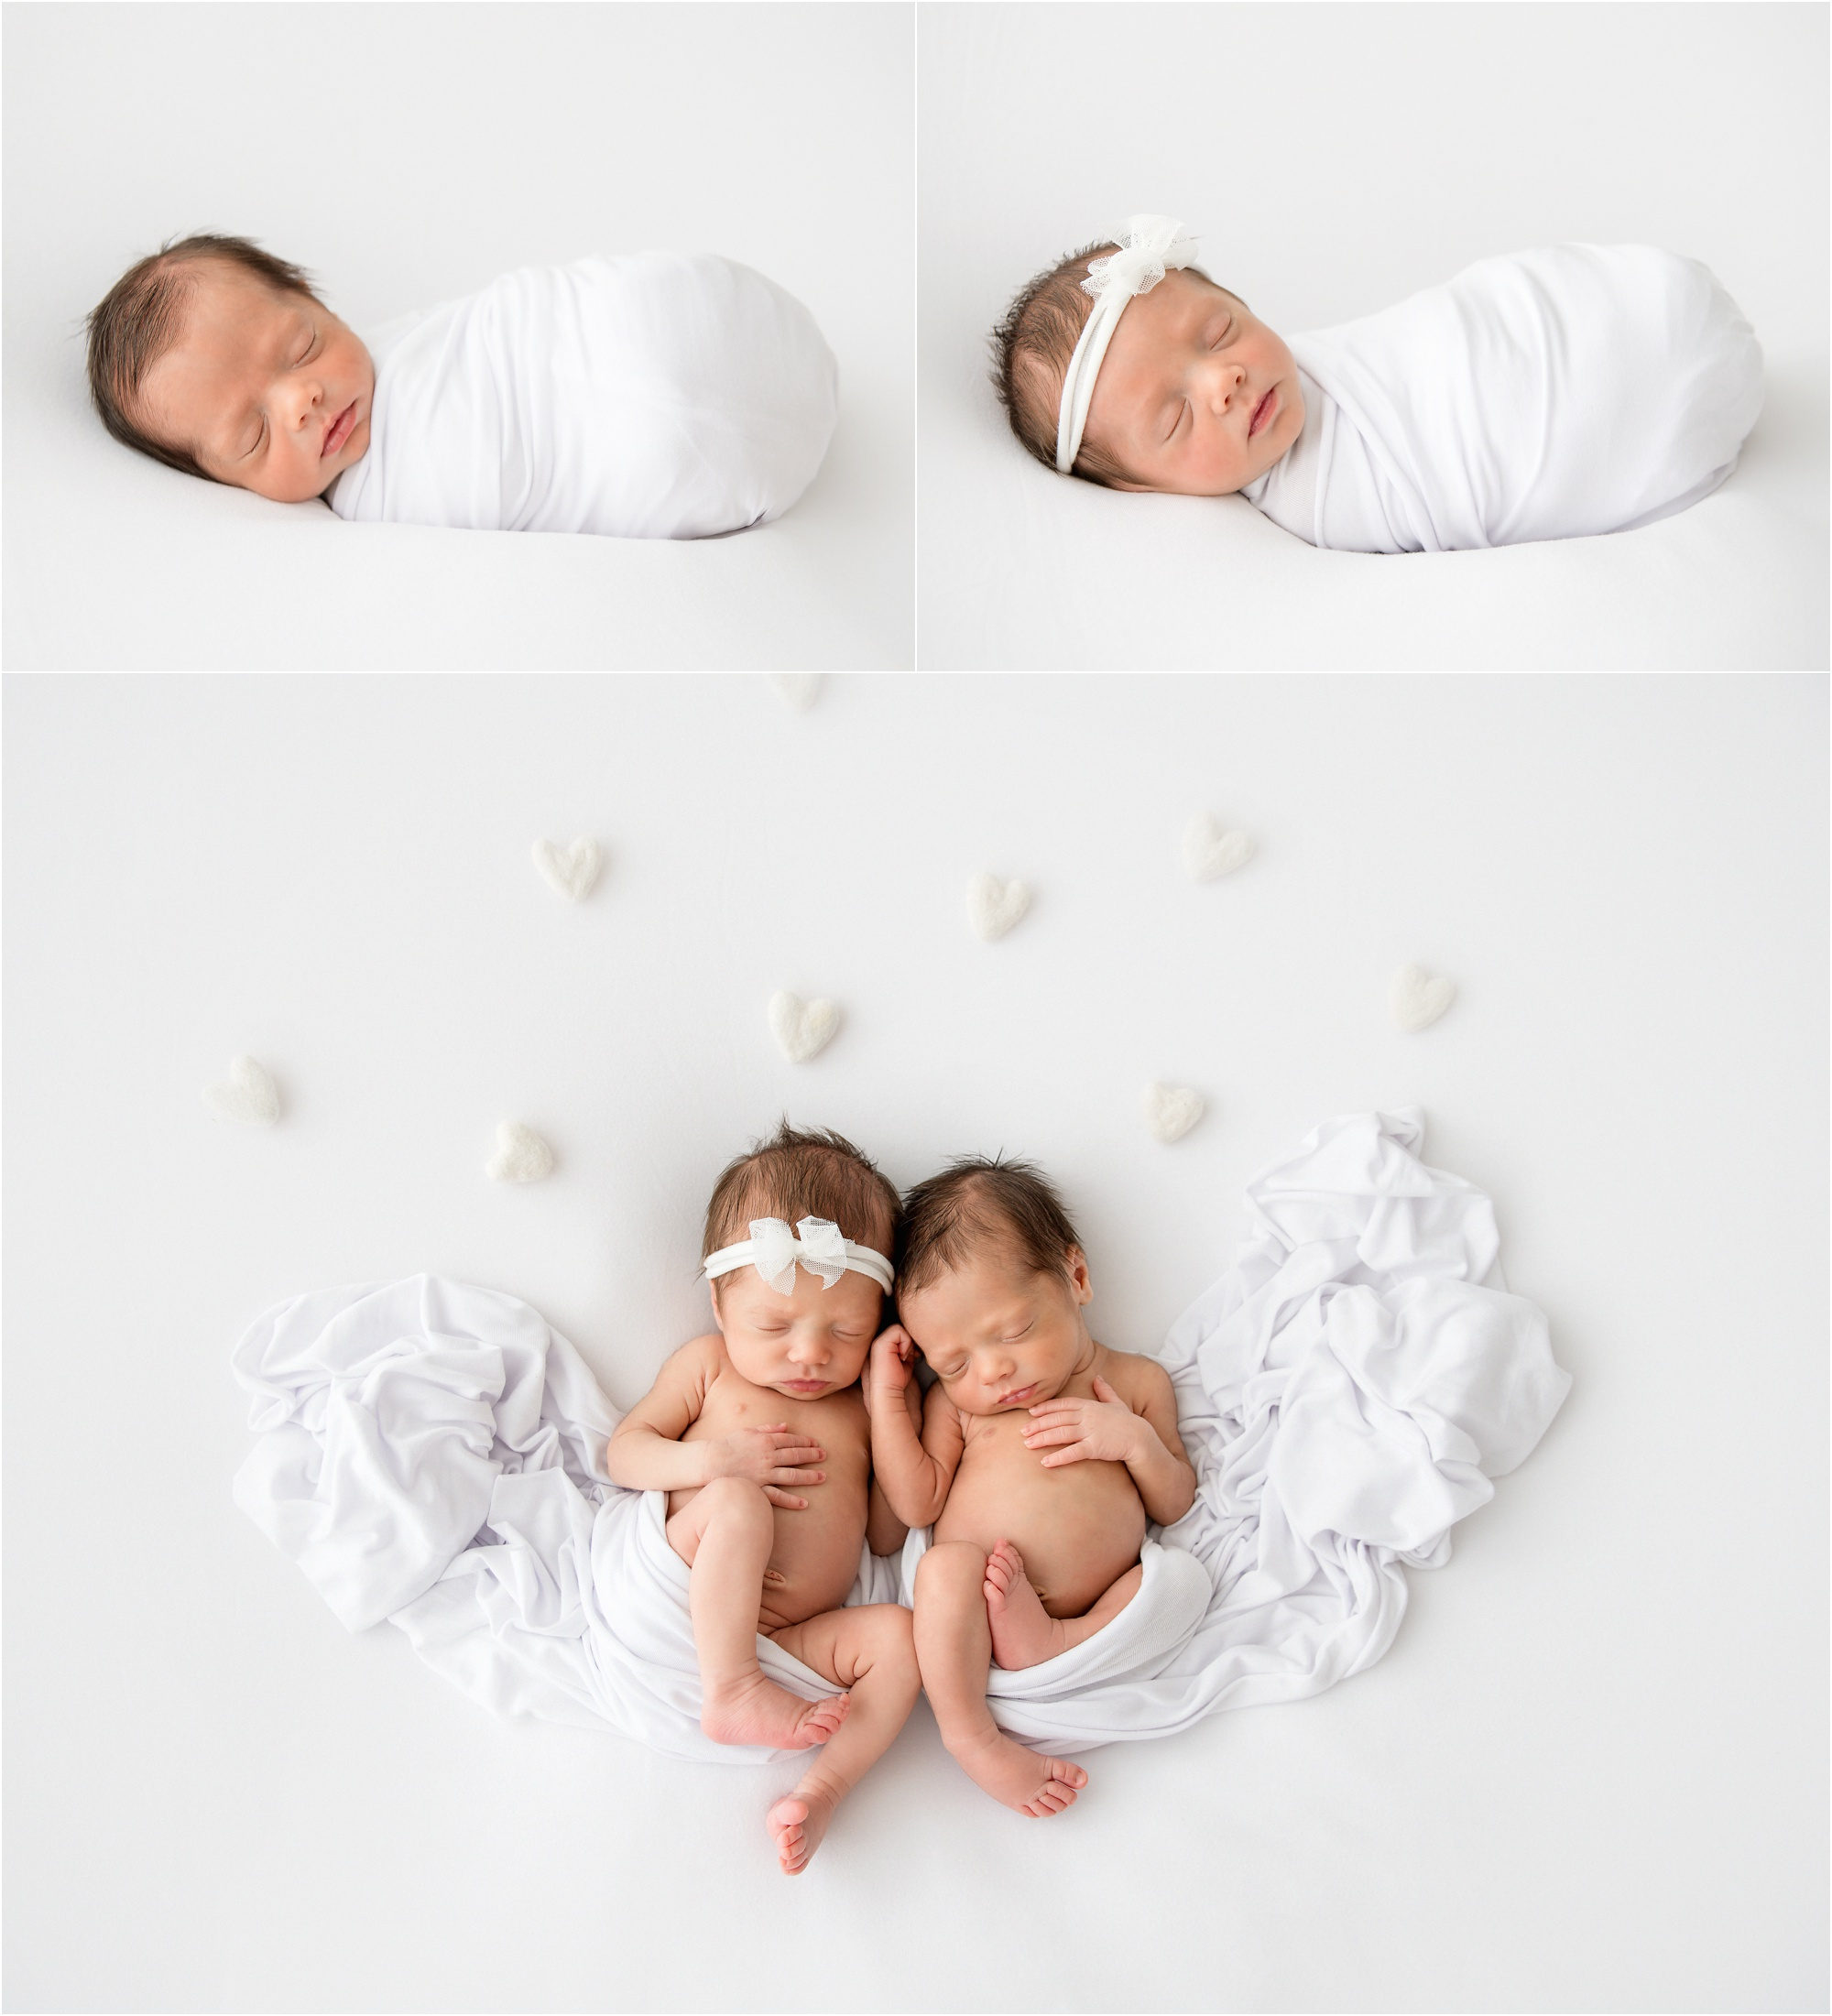 twin-newbornphotographer-richmond-hill-ga2.jpg